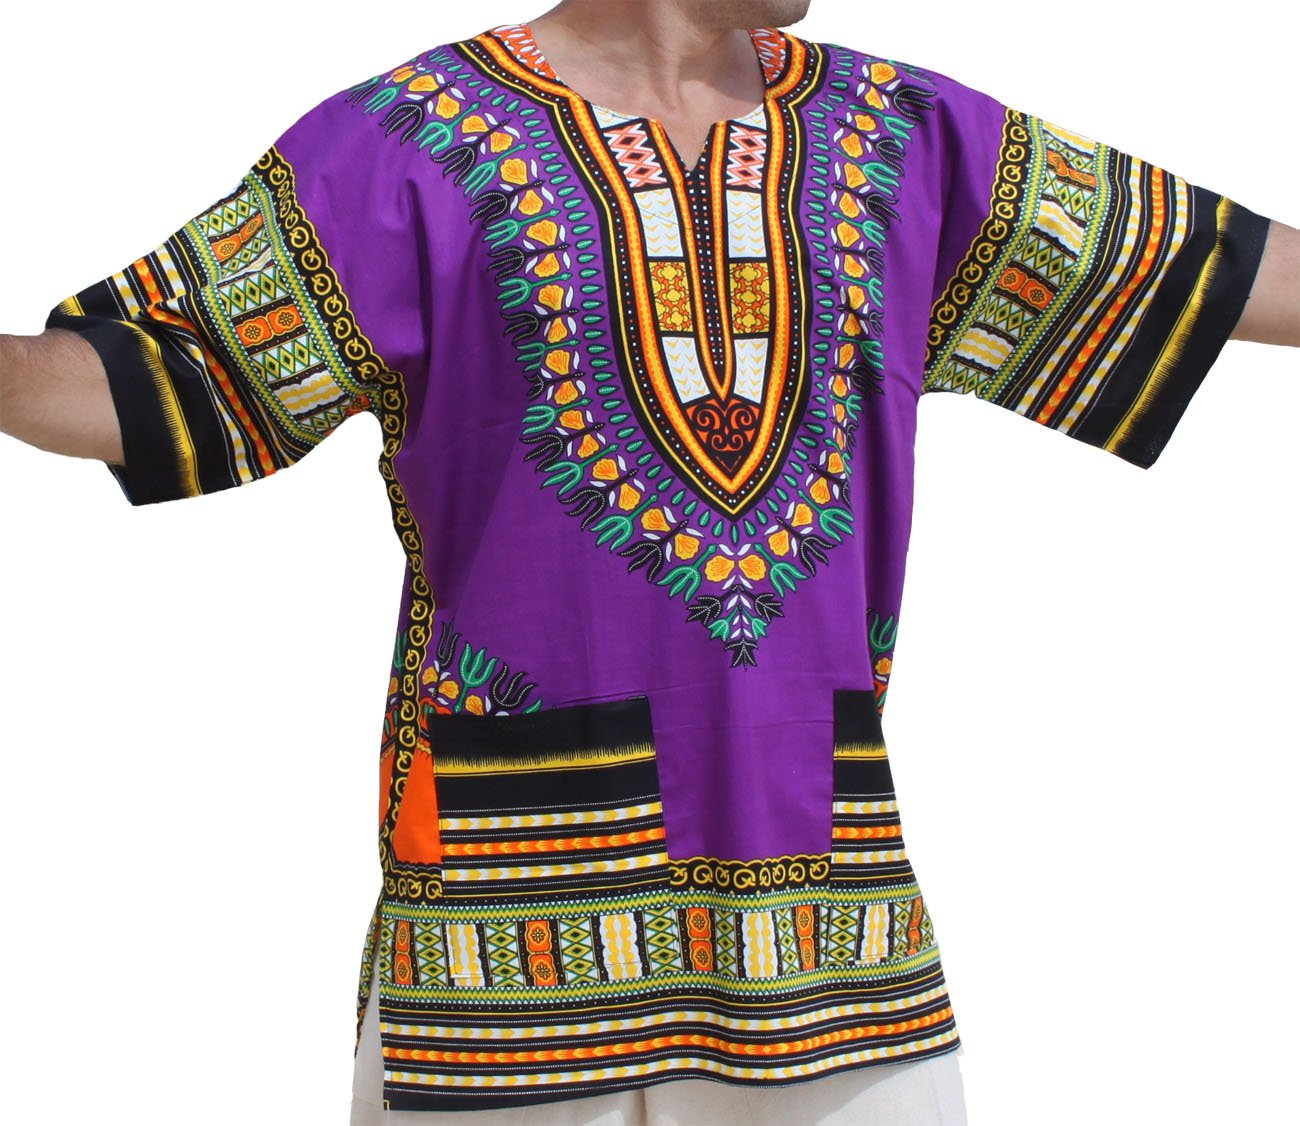 RaanPahMuang Unisex Bright Coloured African Dashiki Cotton Plus Shirt, XXX-Large, Purple